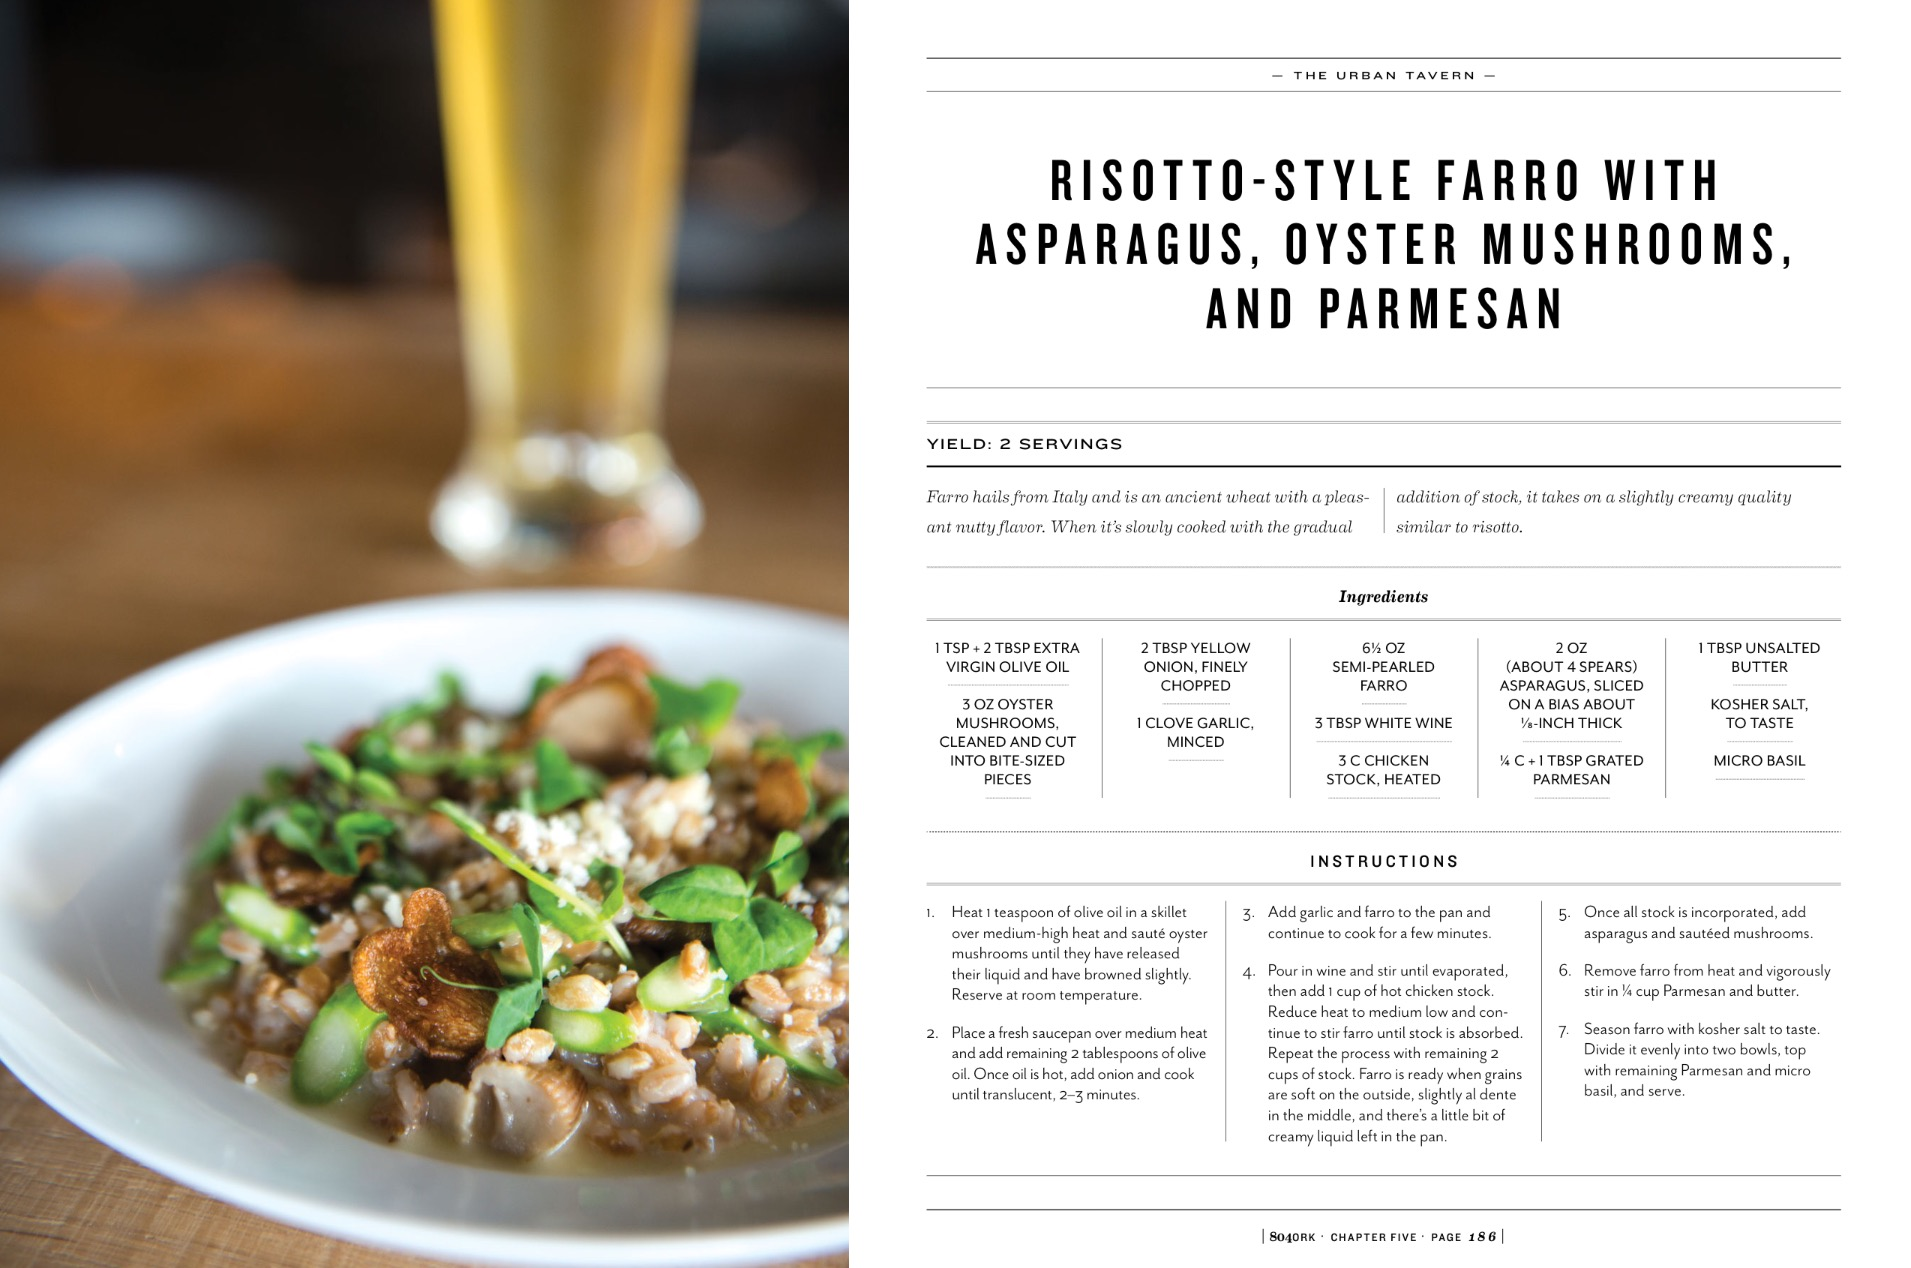 Risotto-Style Farro with Asparagus, Oyster Mushrooms, and Parmesan from Tim Bereika at the Urban Tavern.